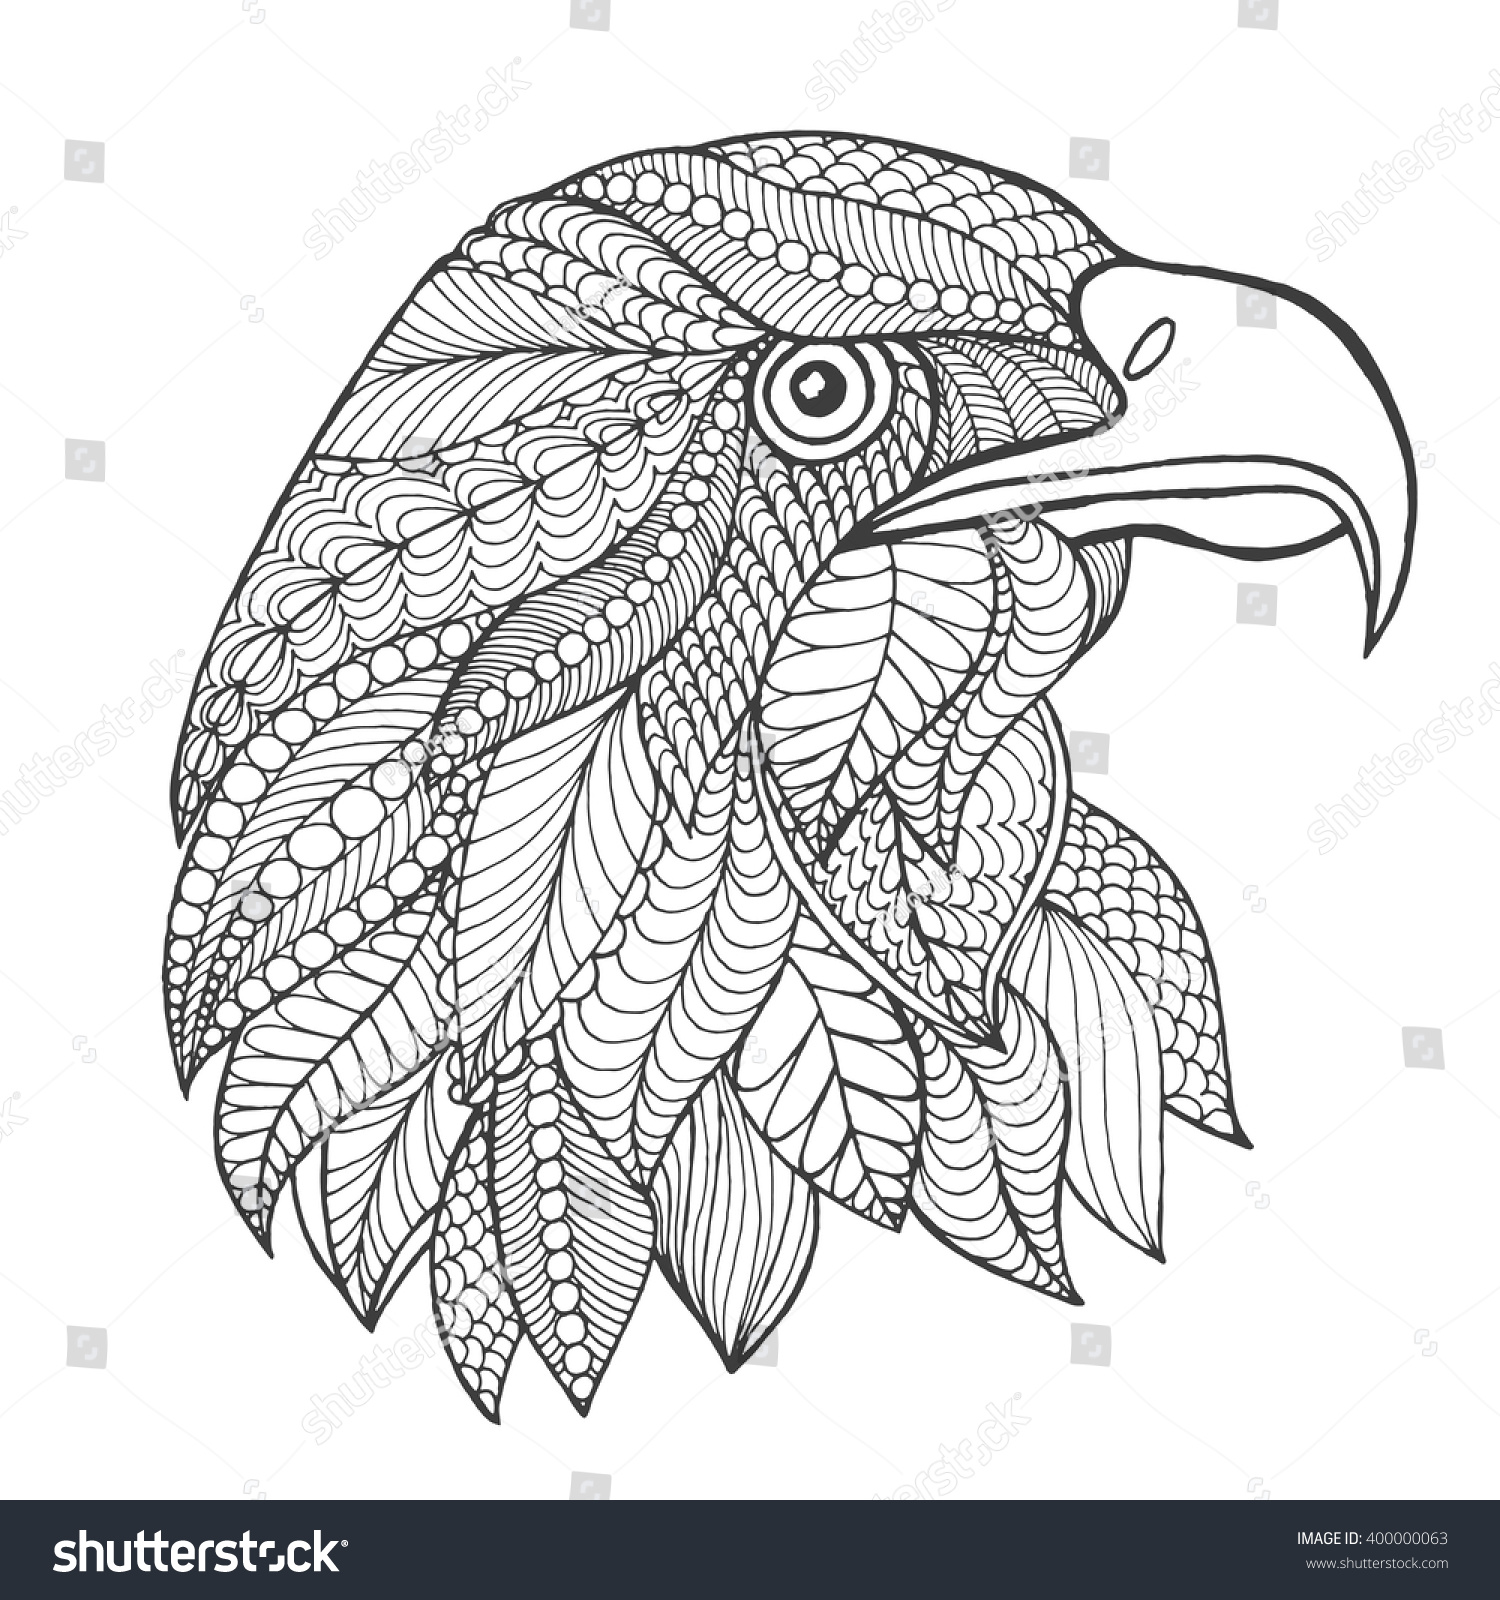 Eagle Head Adult Antistress Coloring Page Stock Vector 400000063 ...